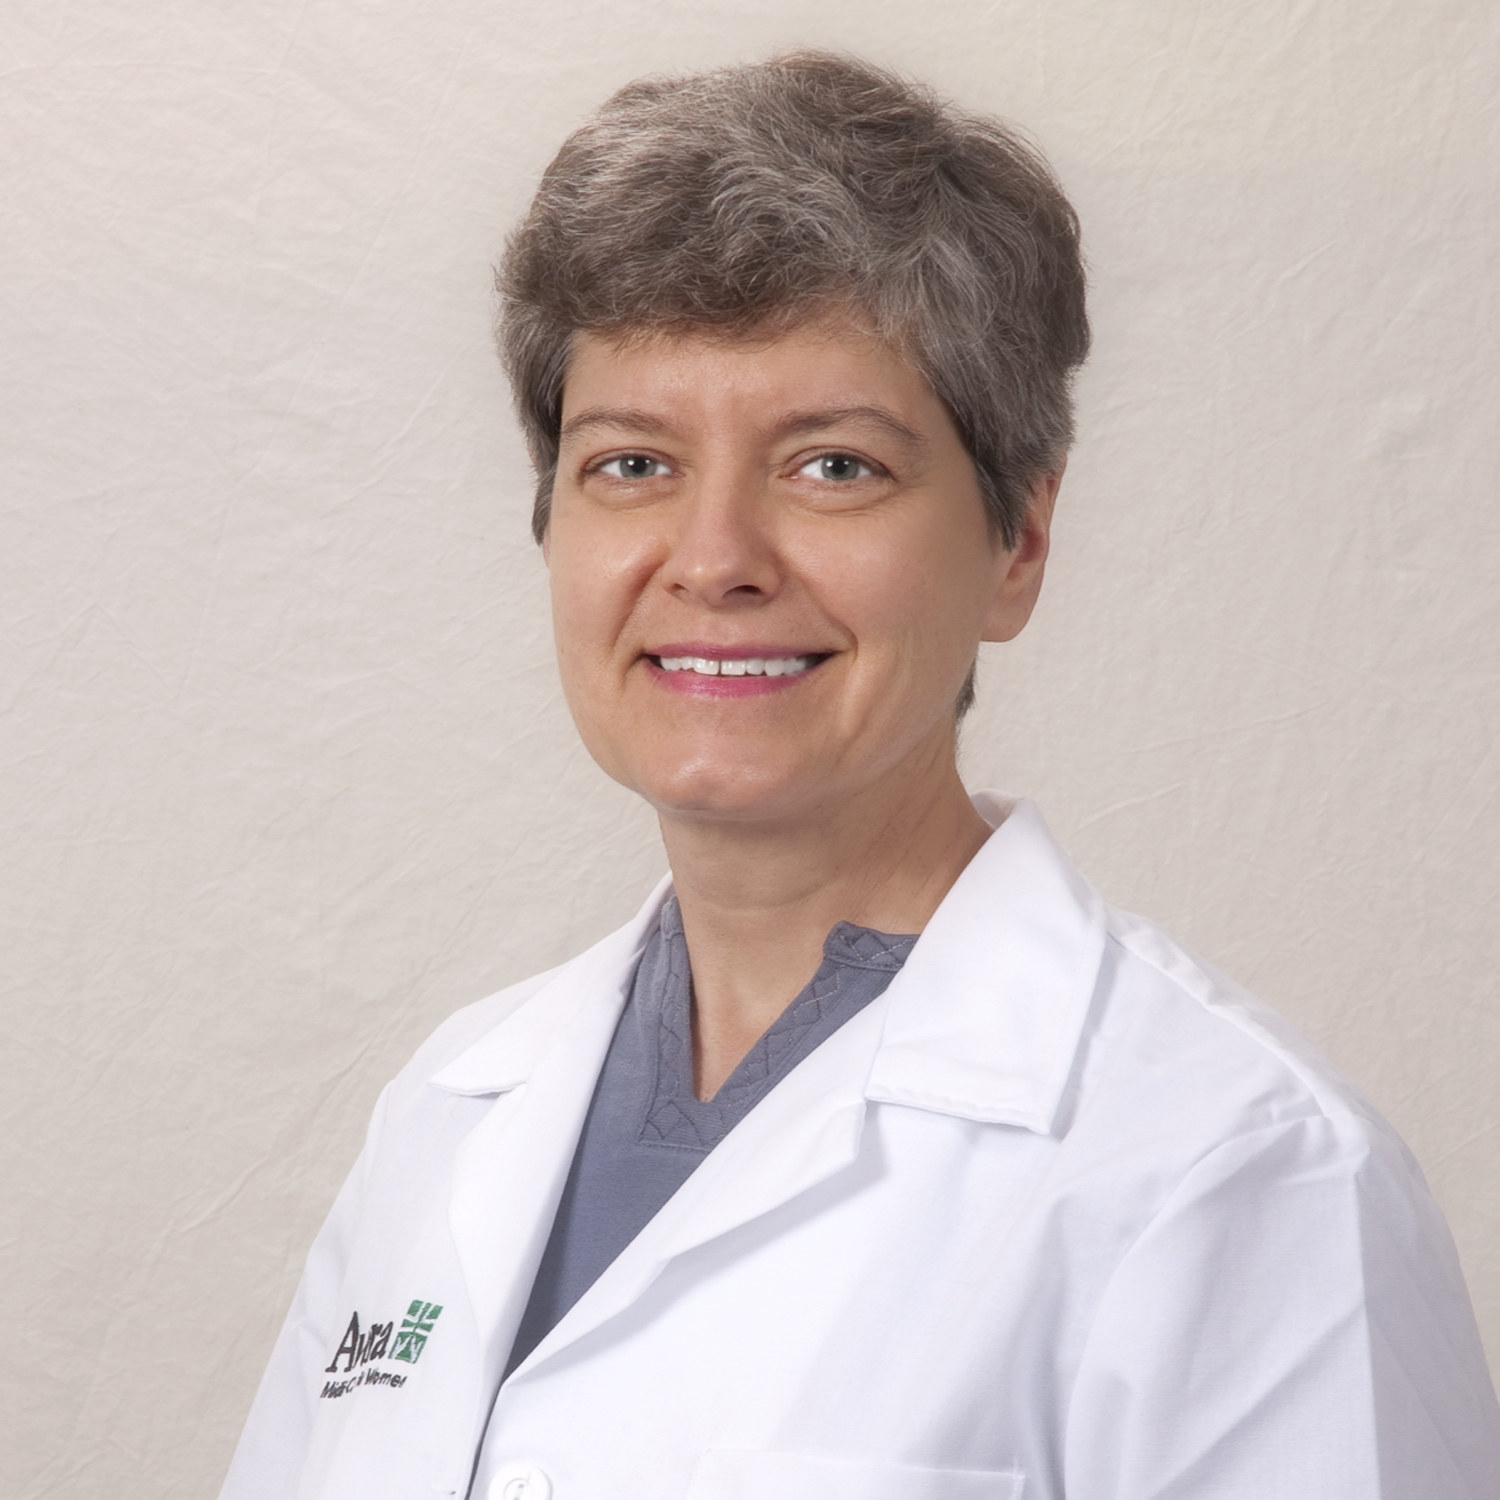 Patricia Peters, MDAvera - Dr. Peters is a family medicine physician. Avera has been a member of the Supportive Care Coalition since 2011.